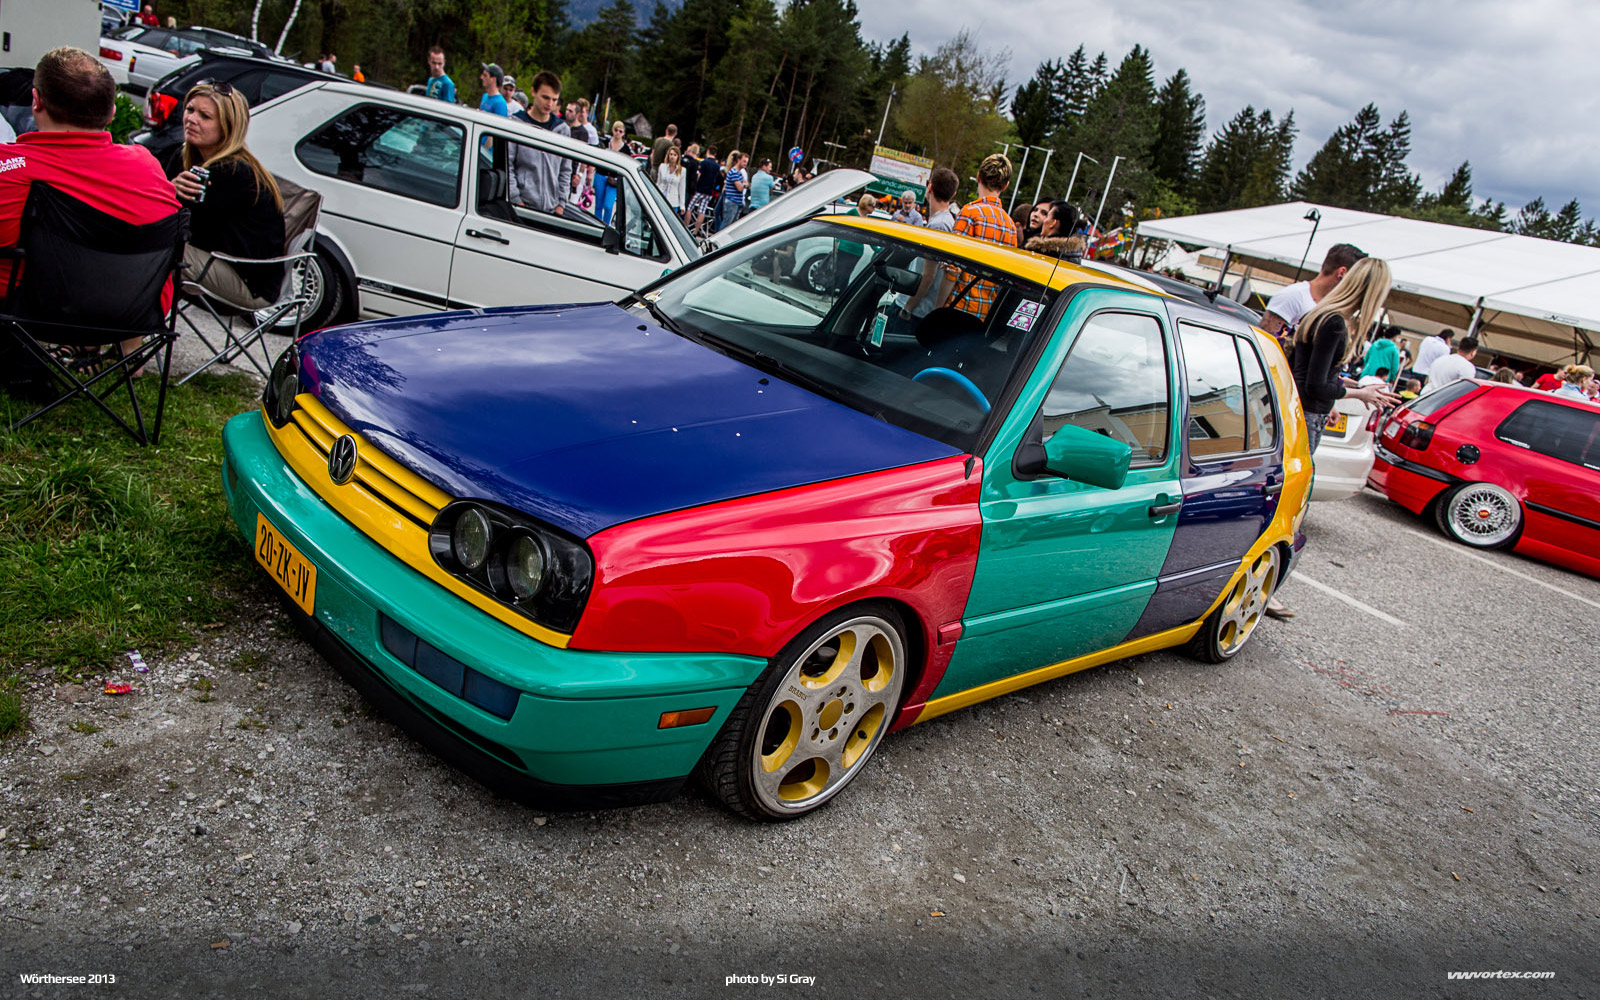 worthersee-2013-gallery-si-gray-045